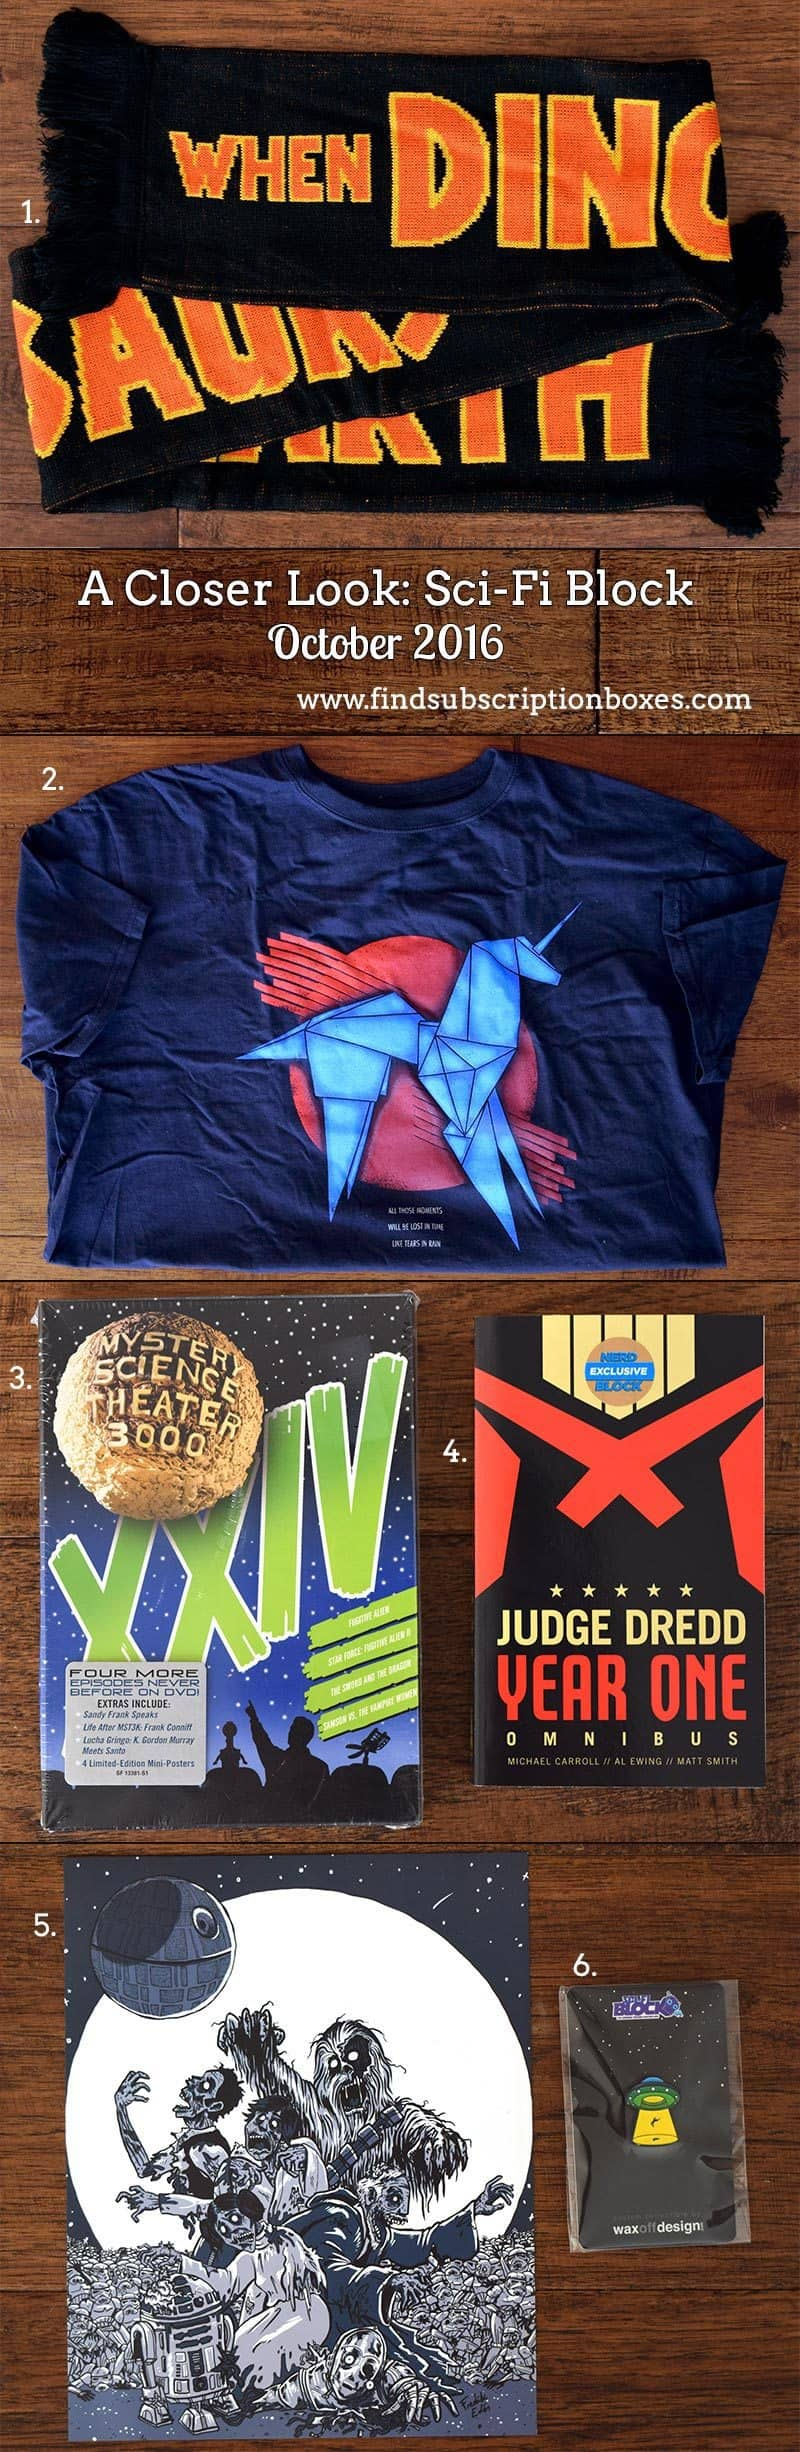 October 2016 Sci-Fi Block Review - Inside the Box